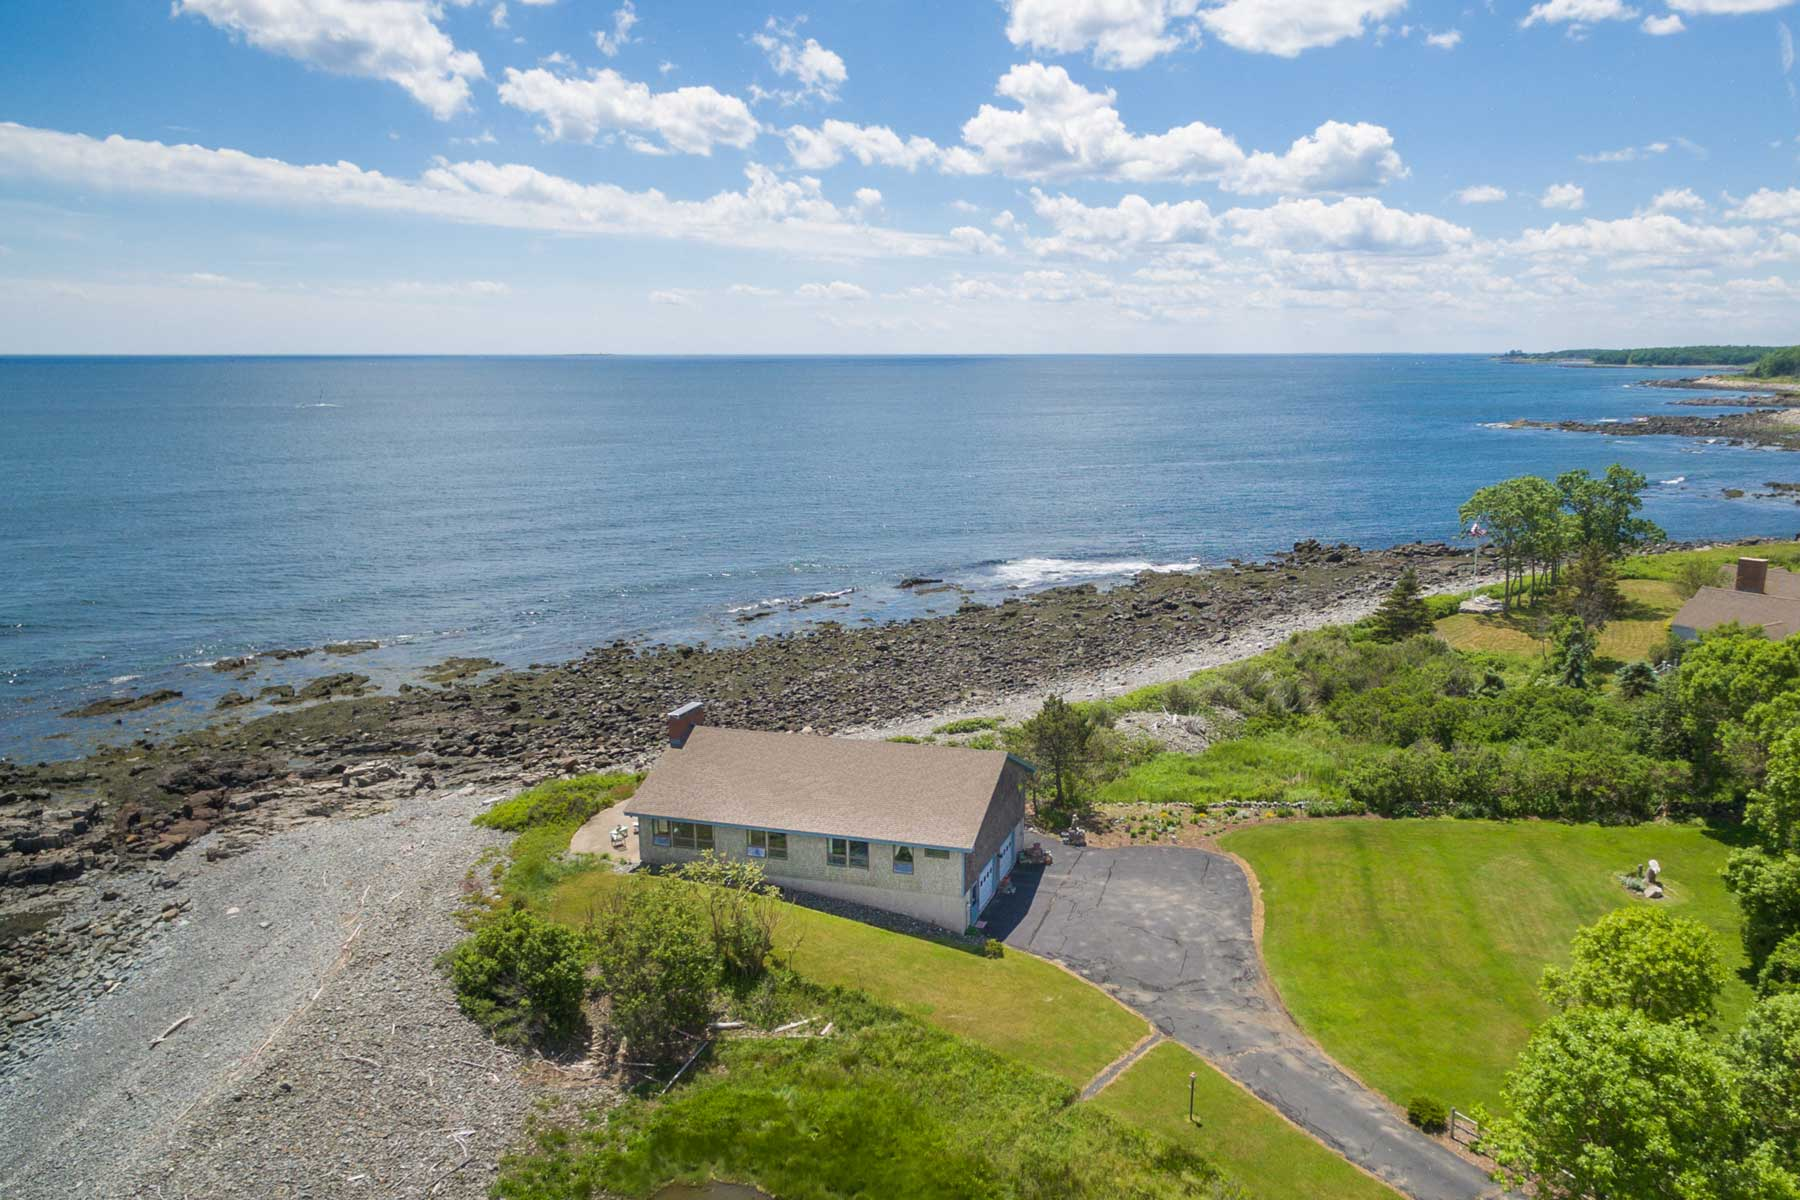 Single Family Home for Sale at Cozy Year-round Cottage on Private Oceanfront Peninsula 21 Kings Road York, Maine, 03909 United States